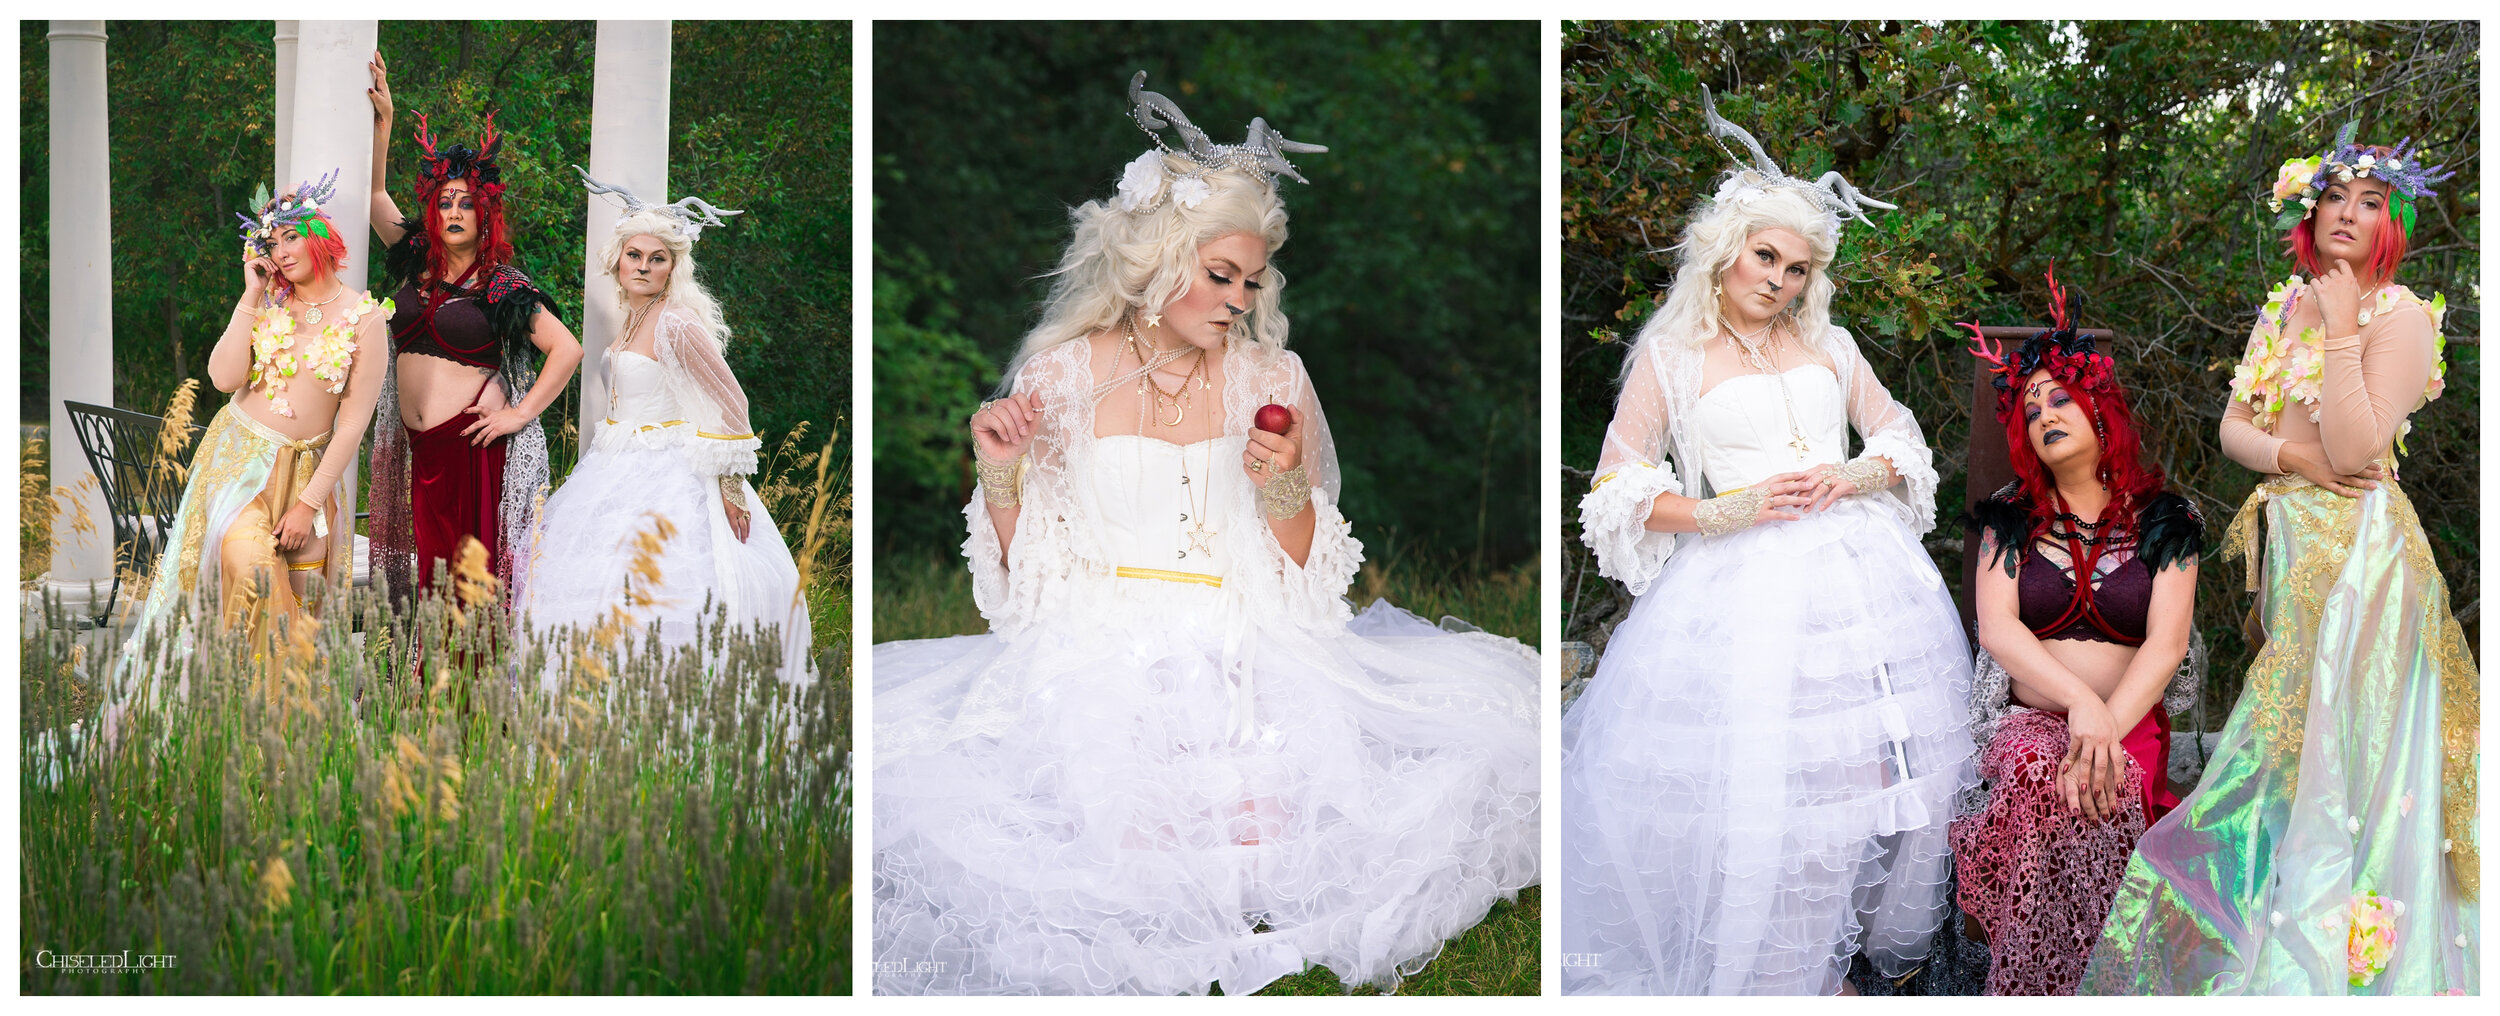 The Seelie and Unseelie Queens, with the White Hind- photos courtesy of Chiseled Light  With Kapi and Yazmine